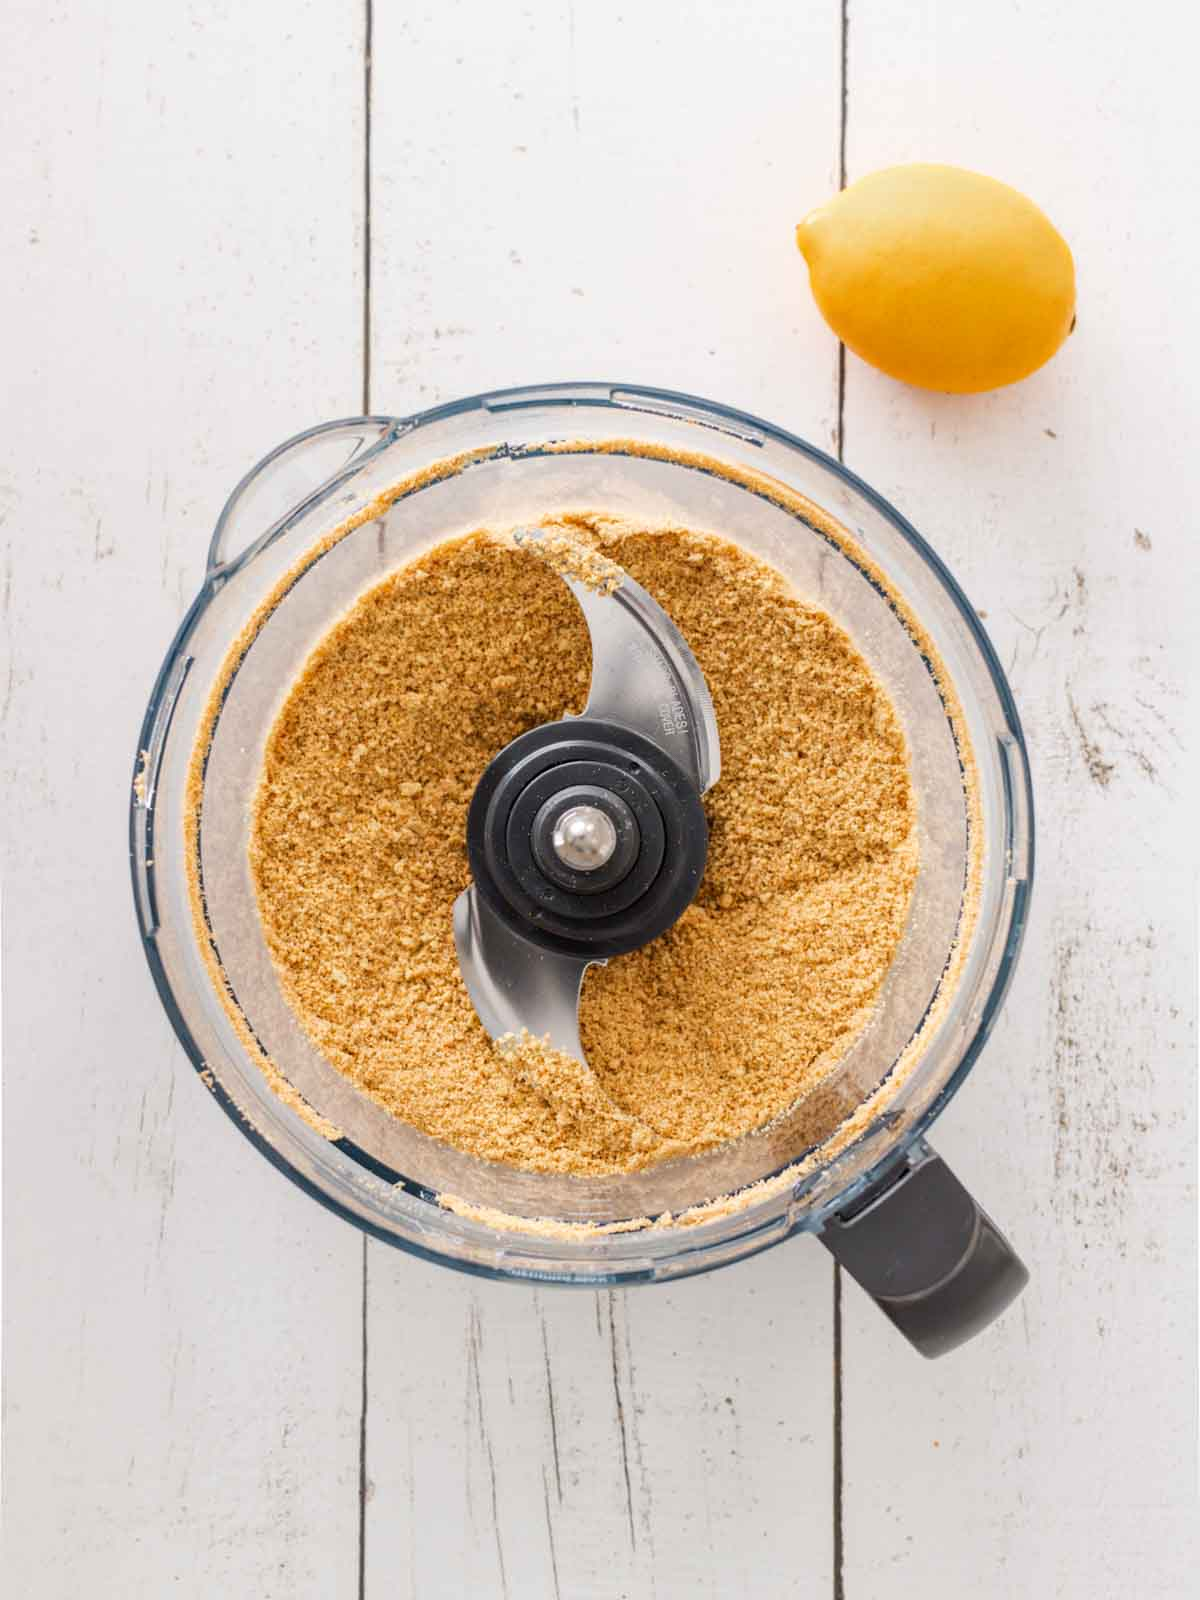 Biscuits in a food processor